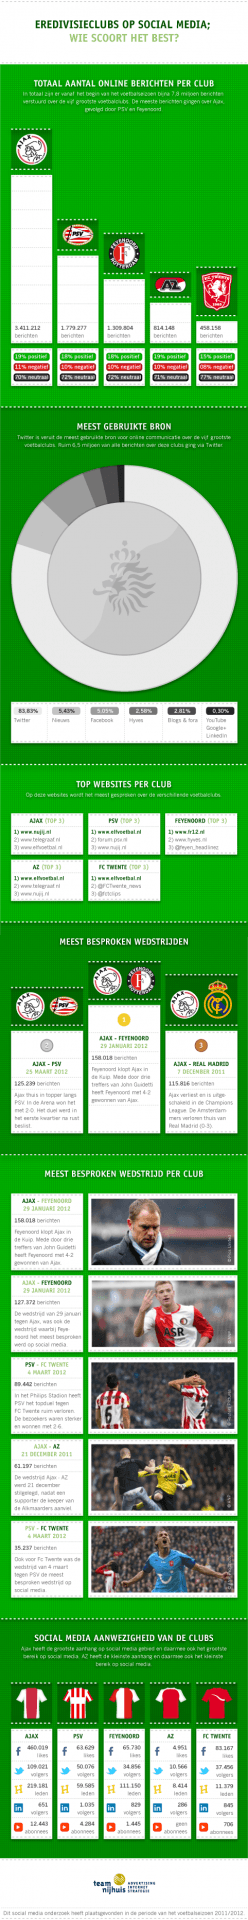 Infographic eredivisieclubs op social media